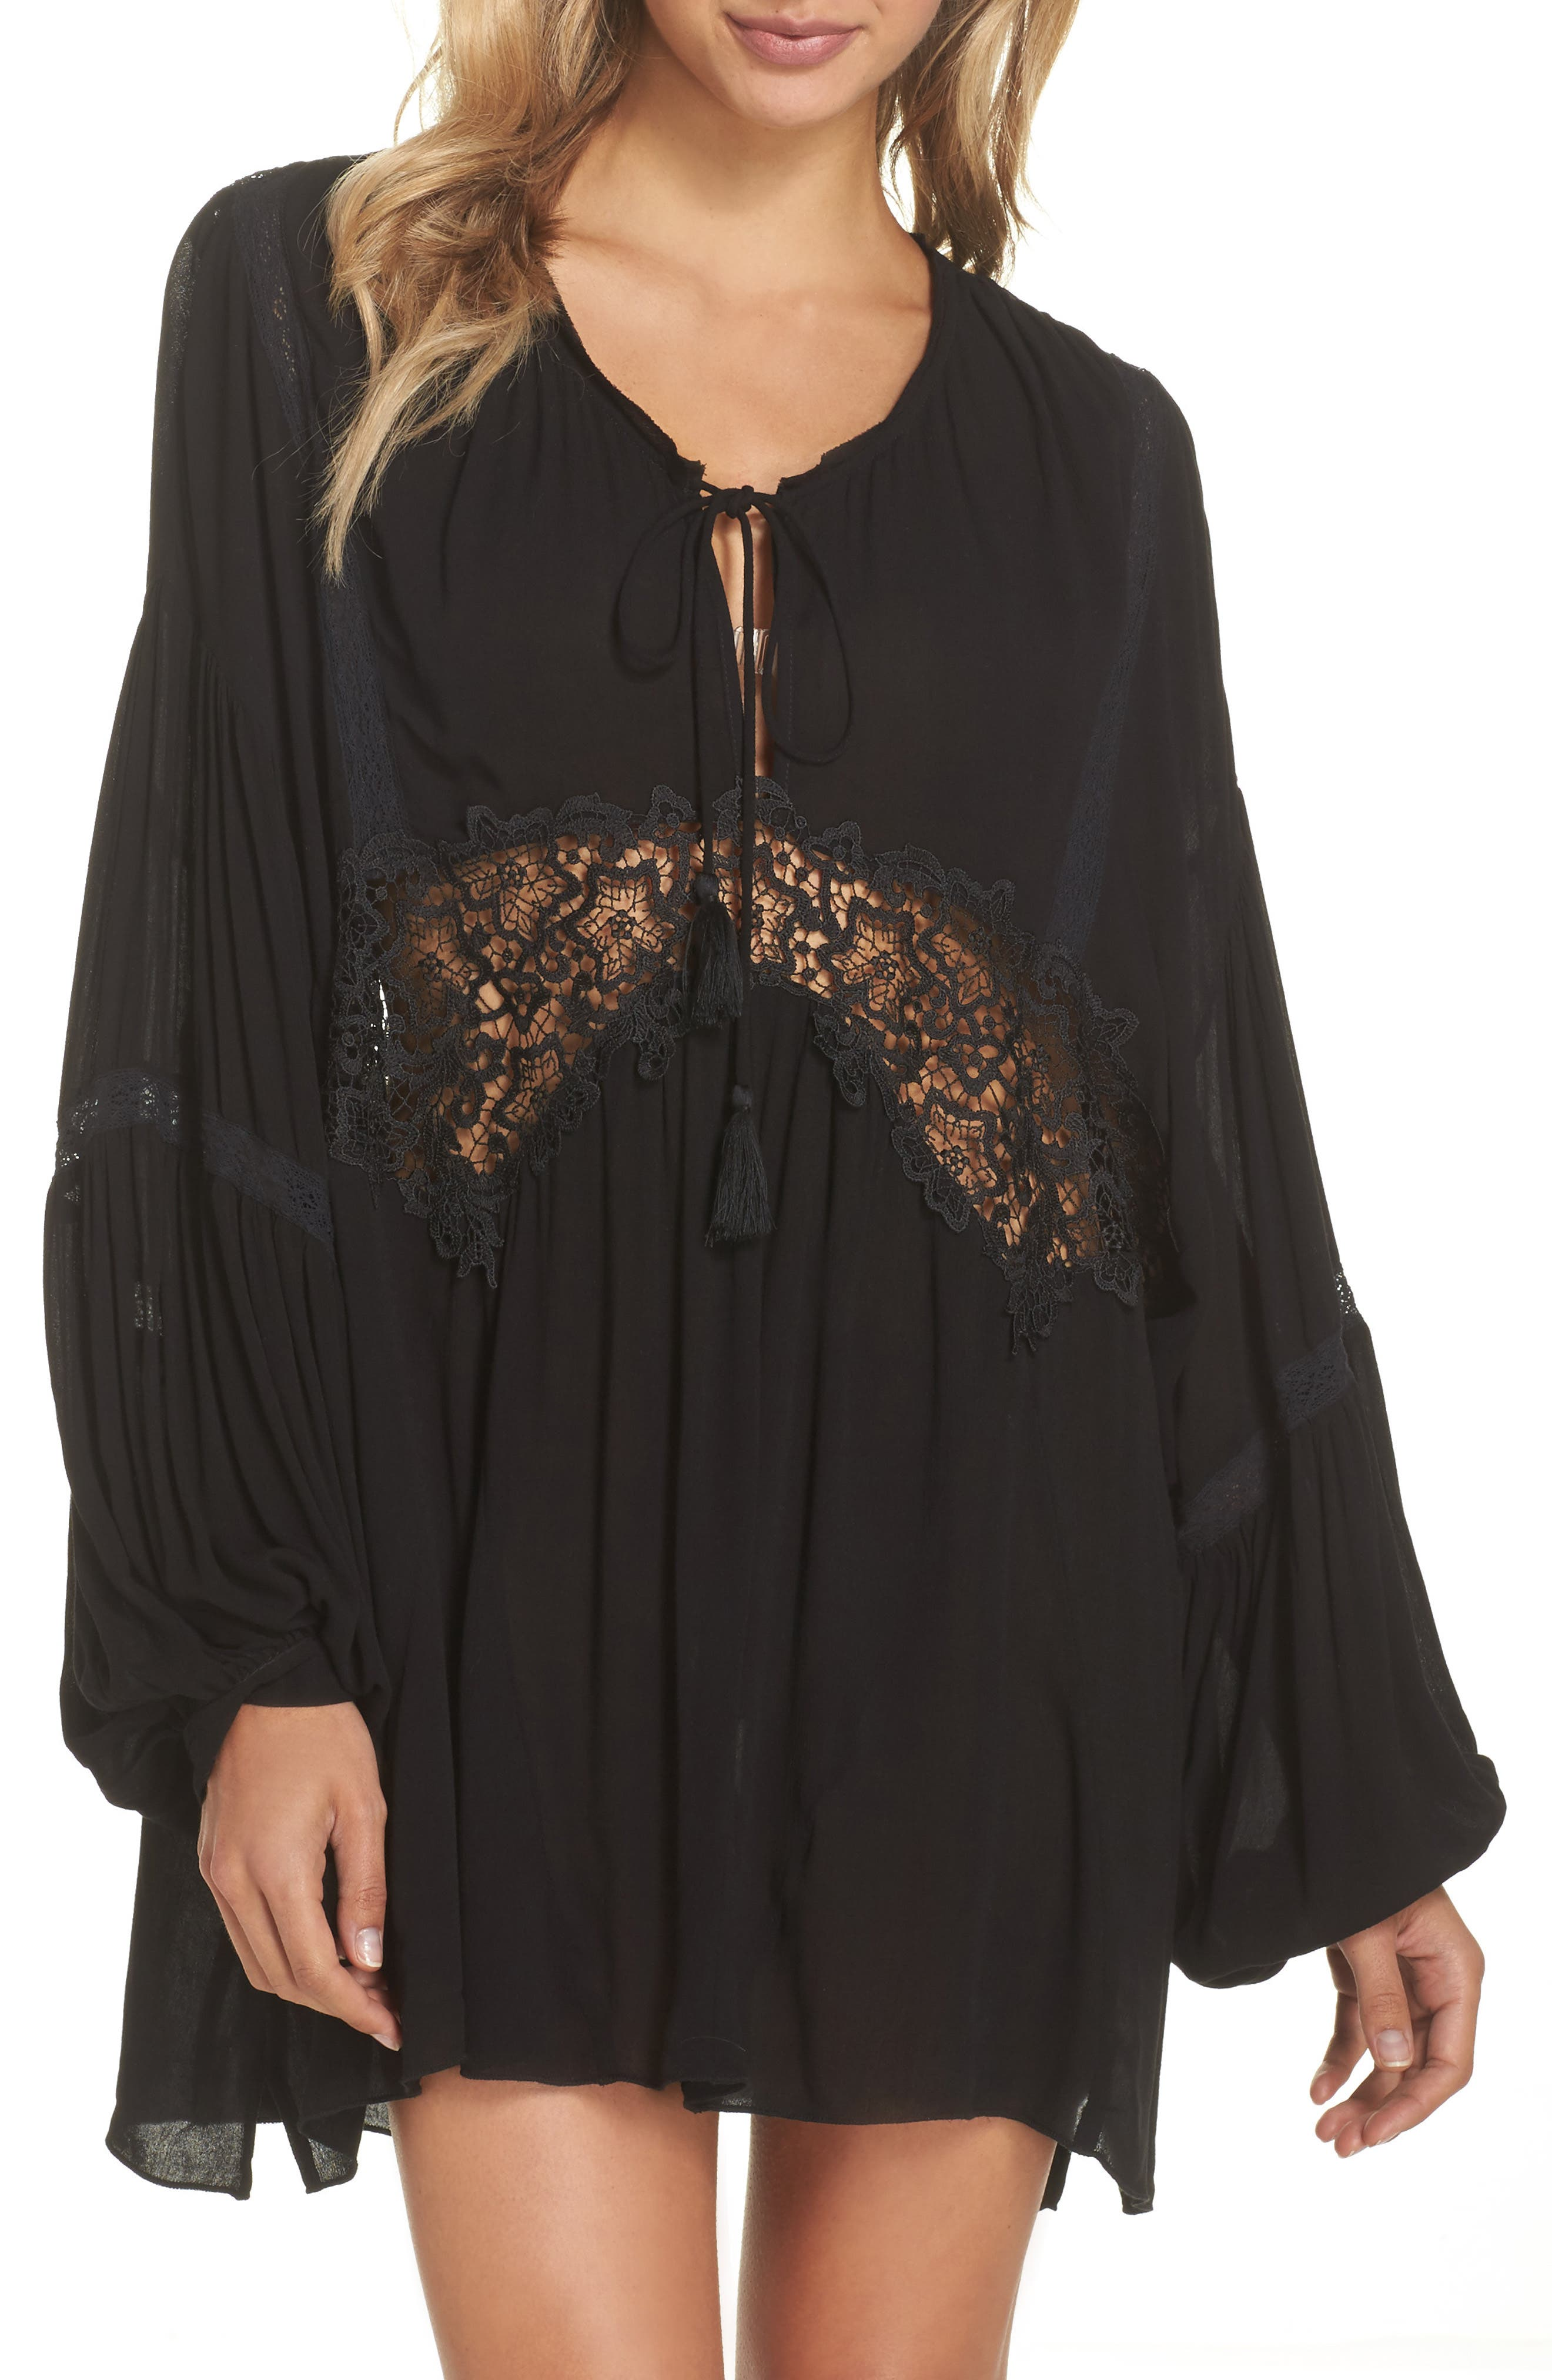 Free People Intimately FP Sleepin' 'n' Dreamin' Lace Inset Top